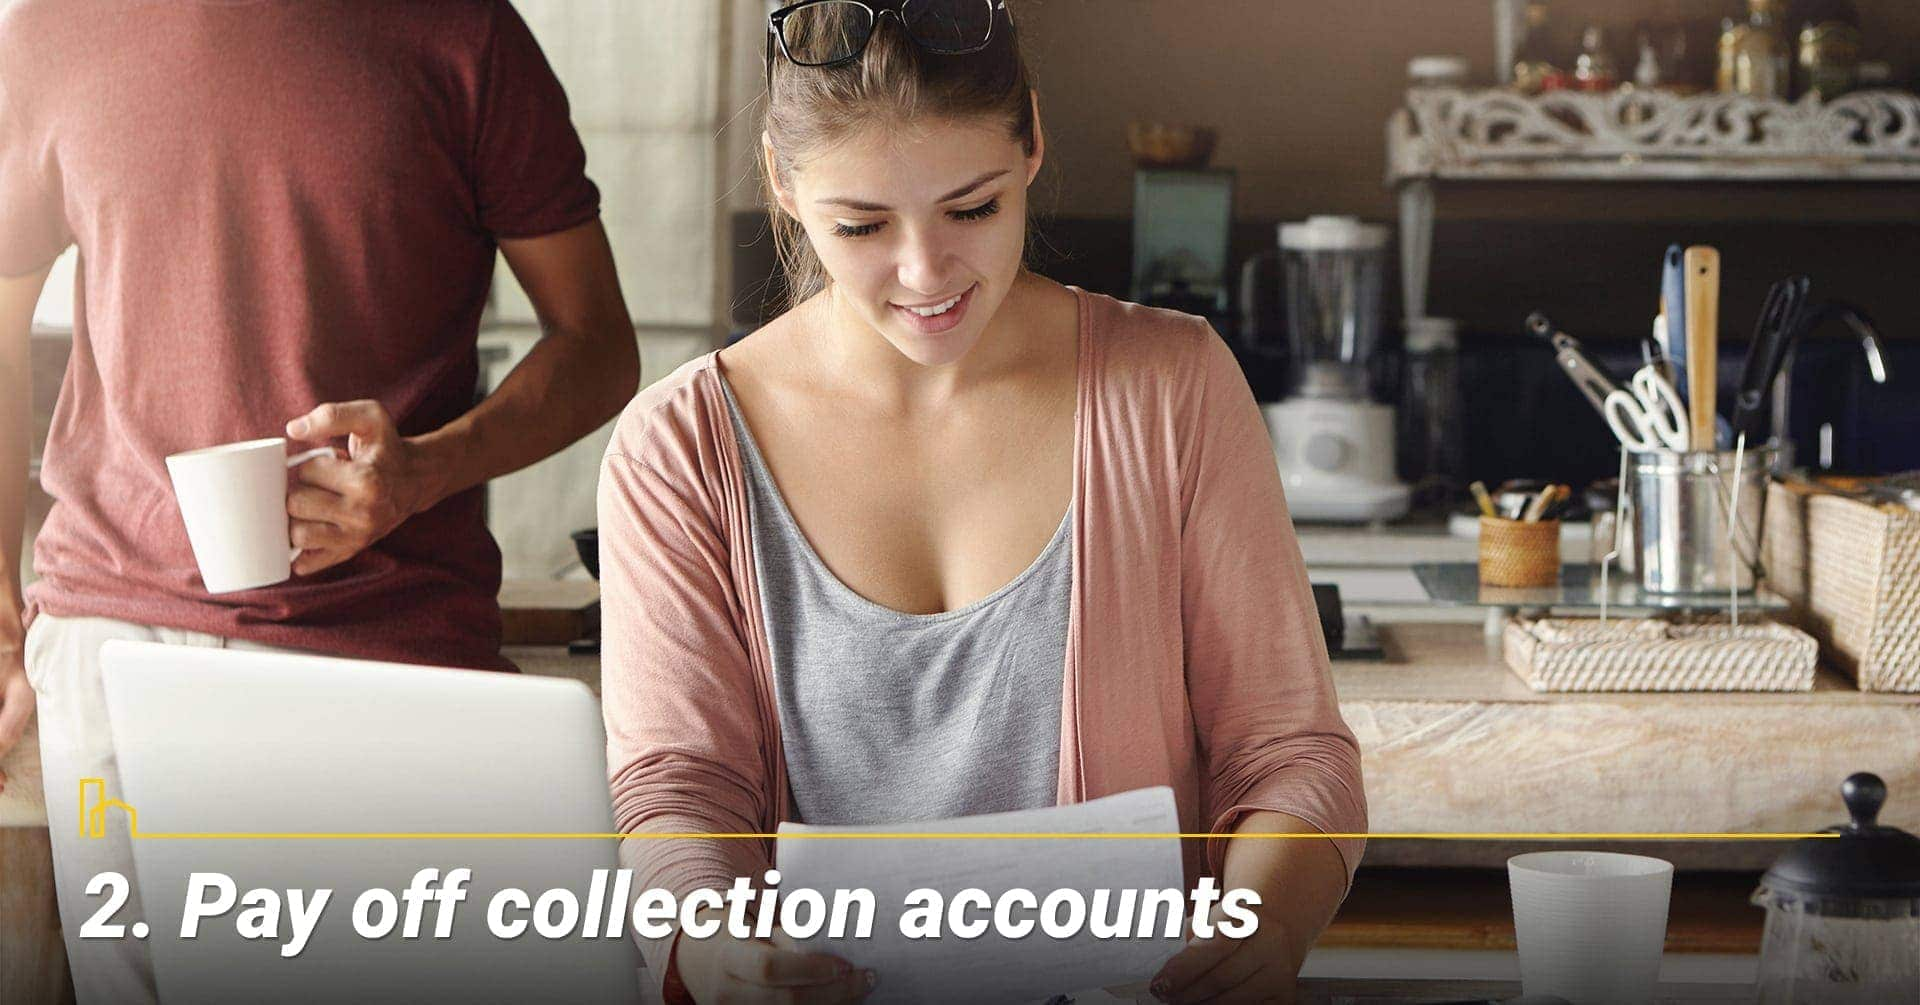 Pay off collection accounts, judgments and tax liens that have been placed on your credit report within the last 3 years. Pay off collection accounts